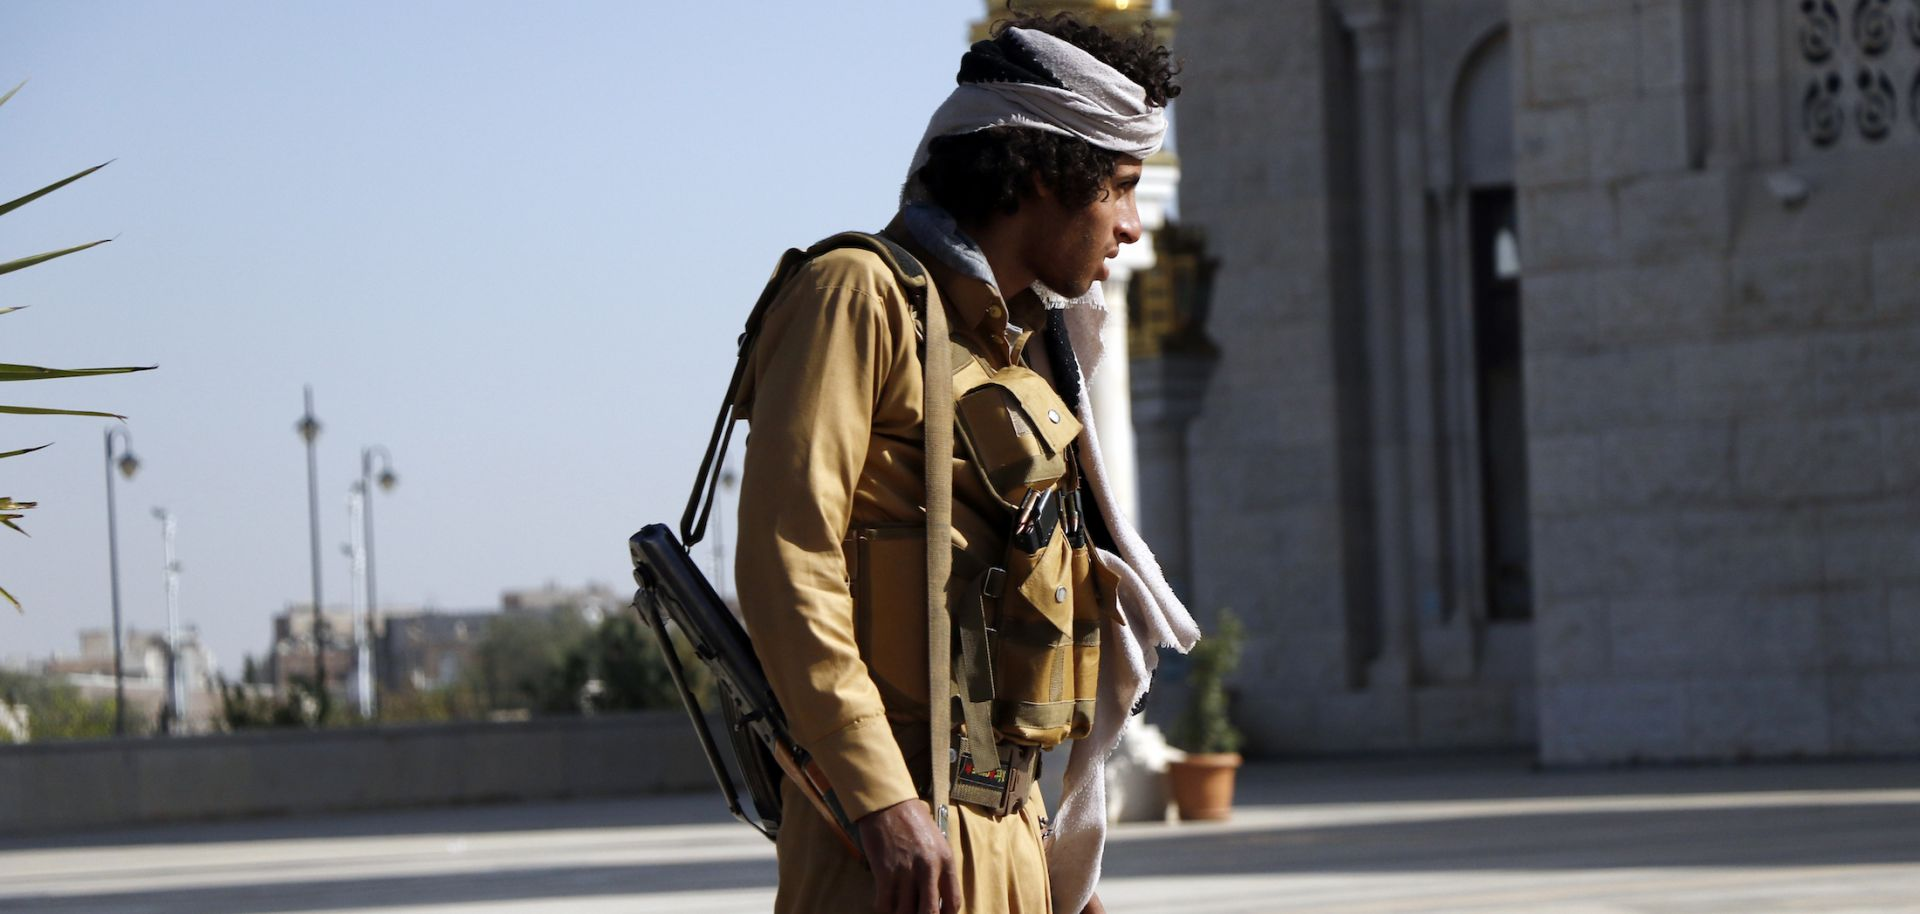 A Houthi fighter stands outside at a funeral for rebels killed in Marib, Yemen, on Feb. 28, 2021.